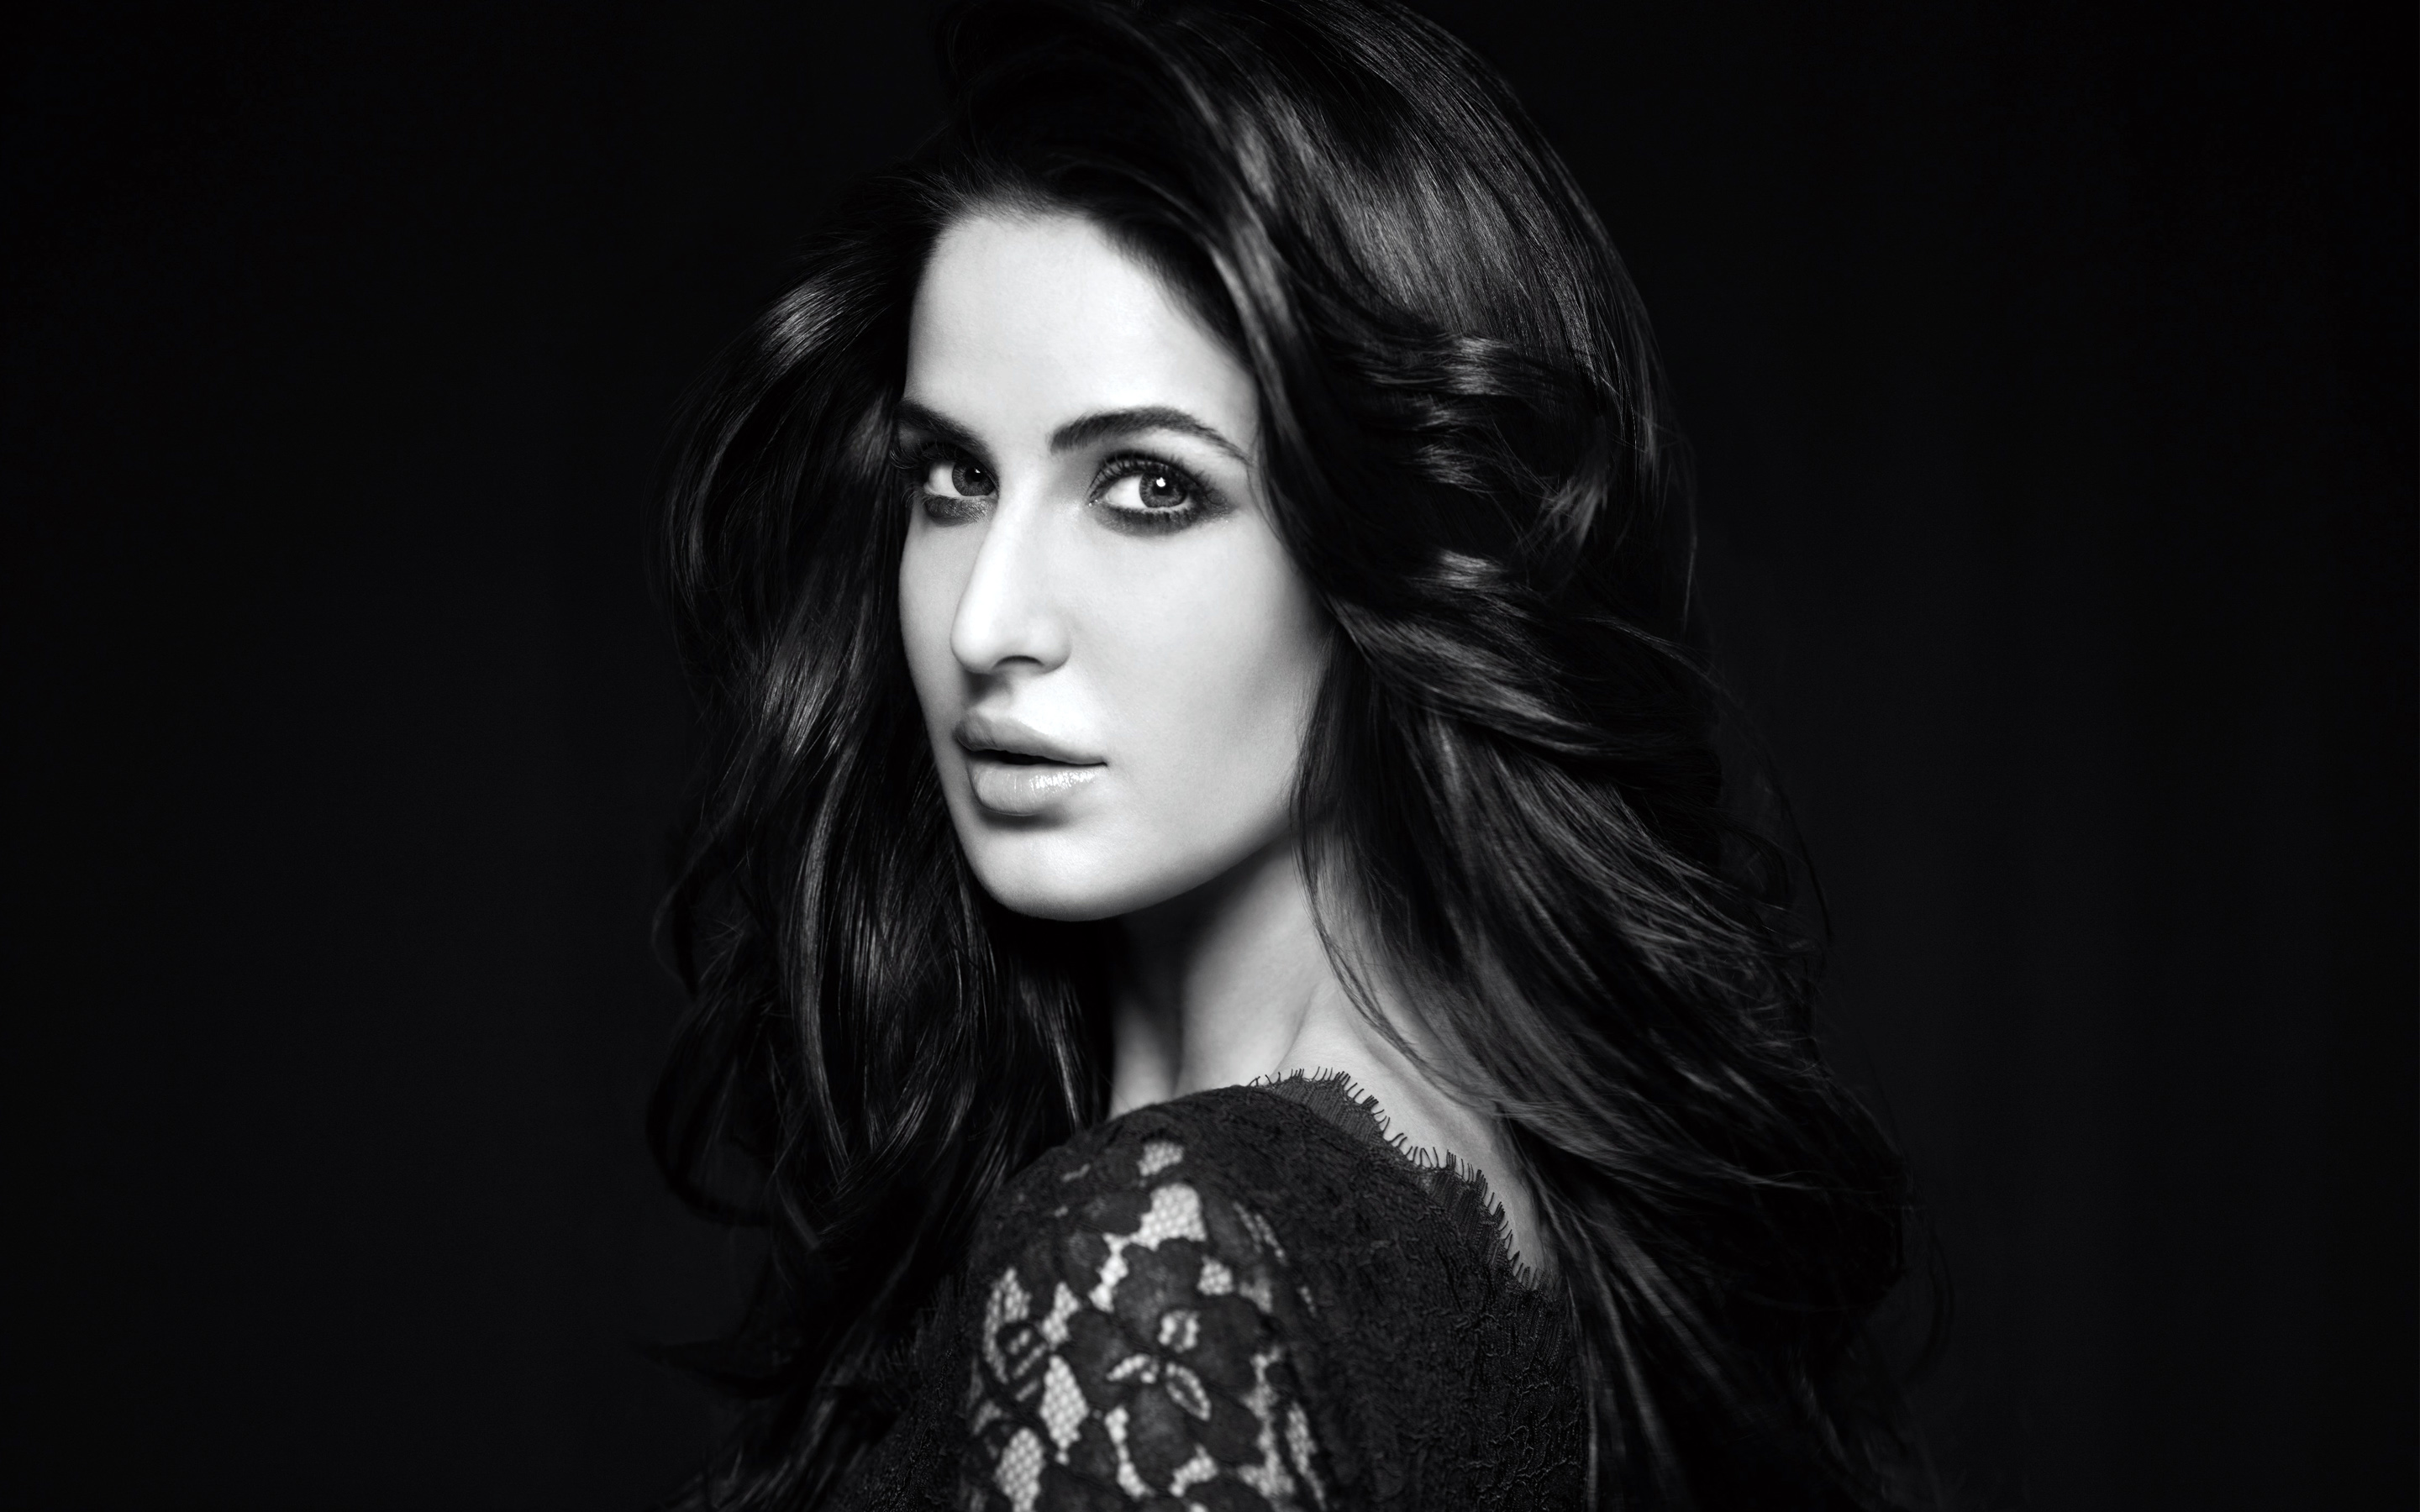 While rumor mills continue to speculate over Ranbir Kapoor and Katrina Kaif's impending engagement plans in May, sources clarify that there is no truth to ...